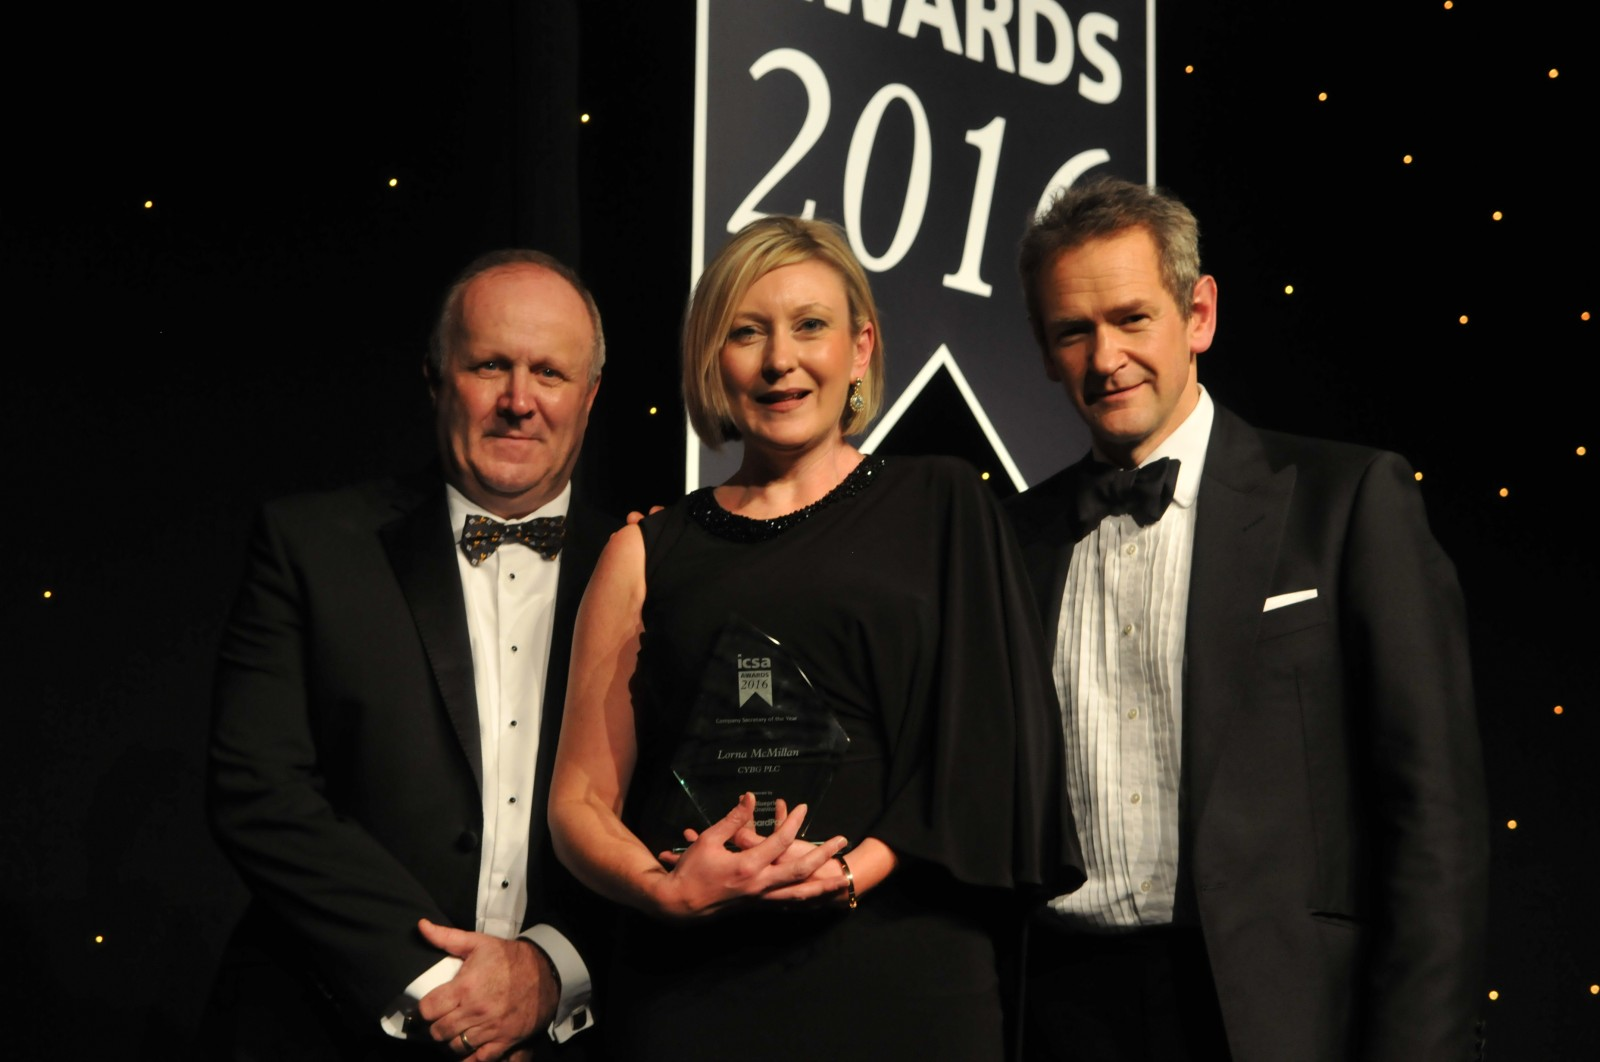 ICSA Awards - Company Secretary of the Year Award